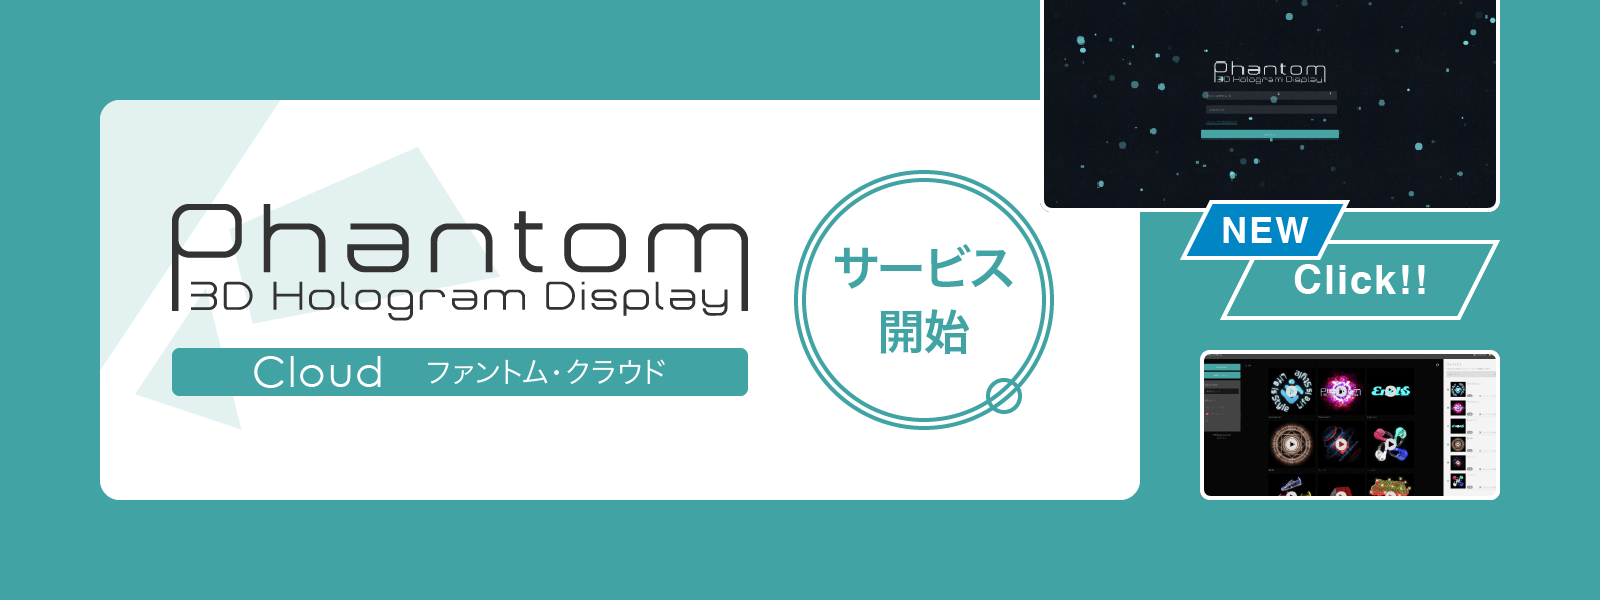 3D Phantom(R)に新サービス【Phantom Cloud】登場